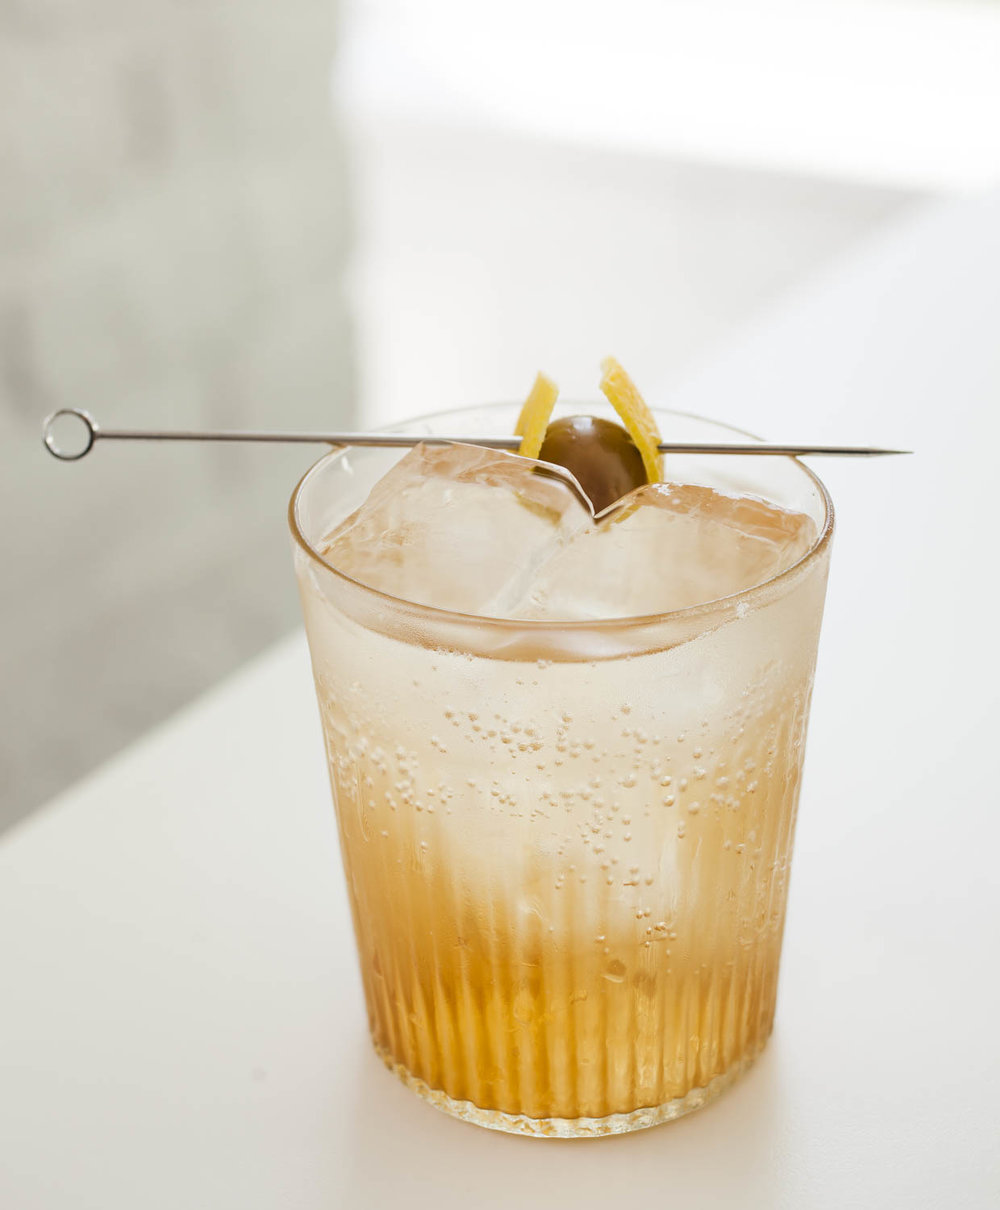 White Vermouth and Soda - 2oz Capitoline White Vermouth over ice2oz seltzerGarnish with lemon peel and green olive